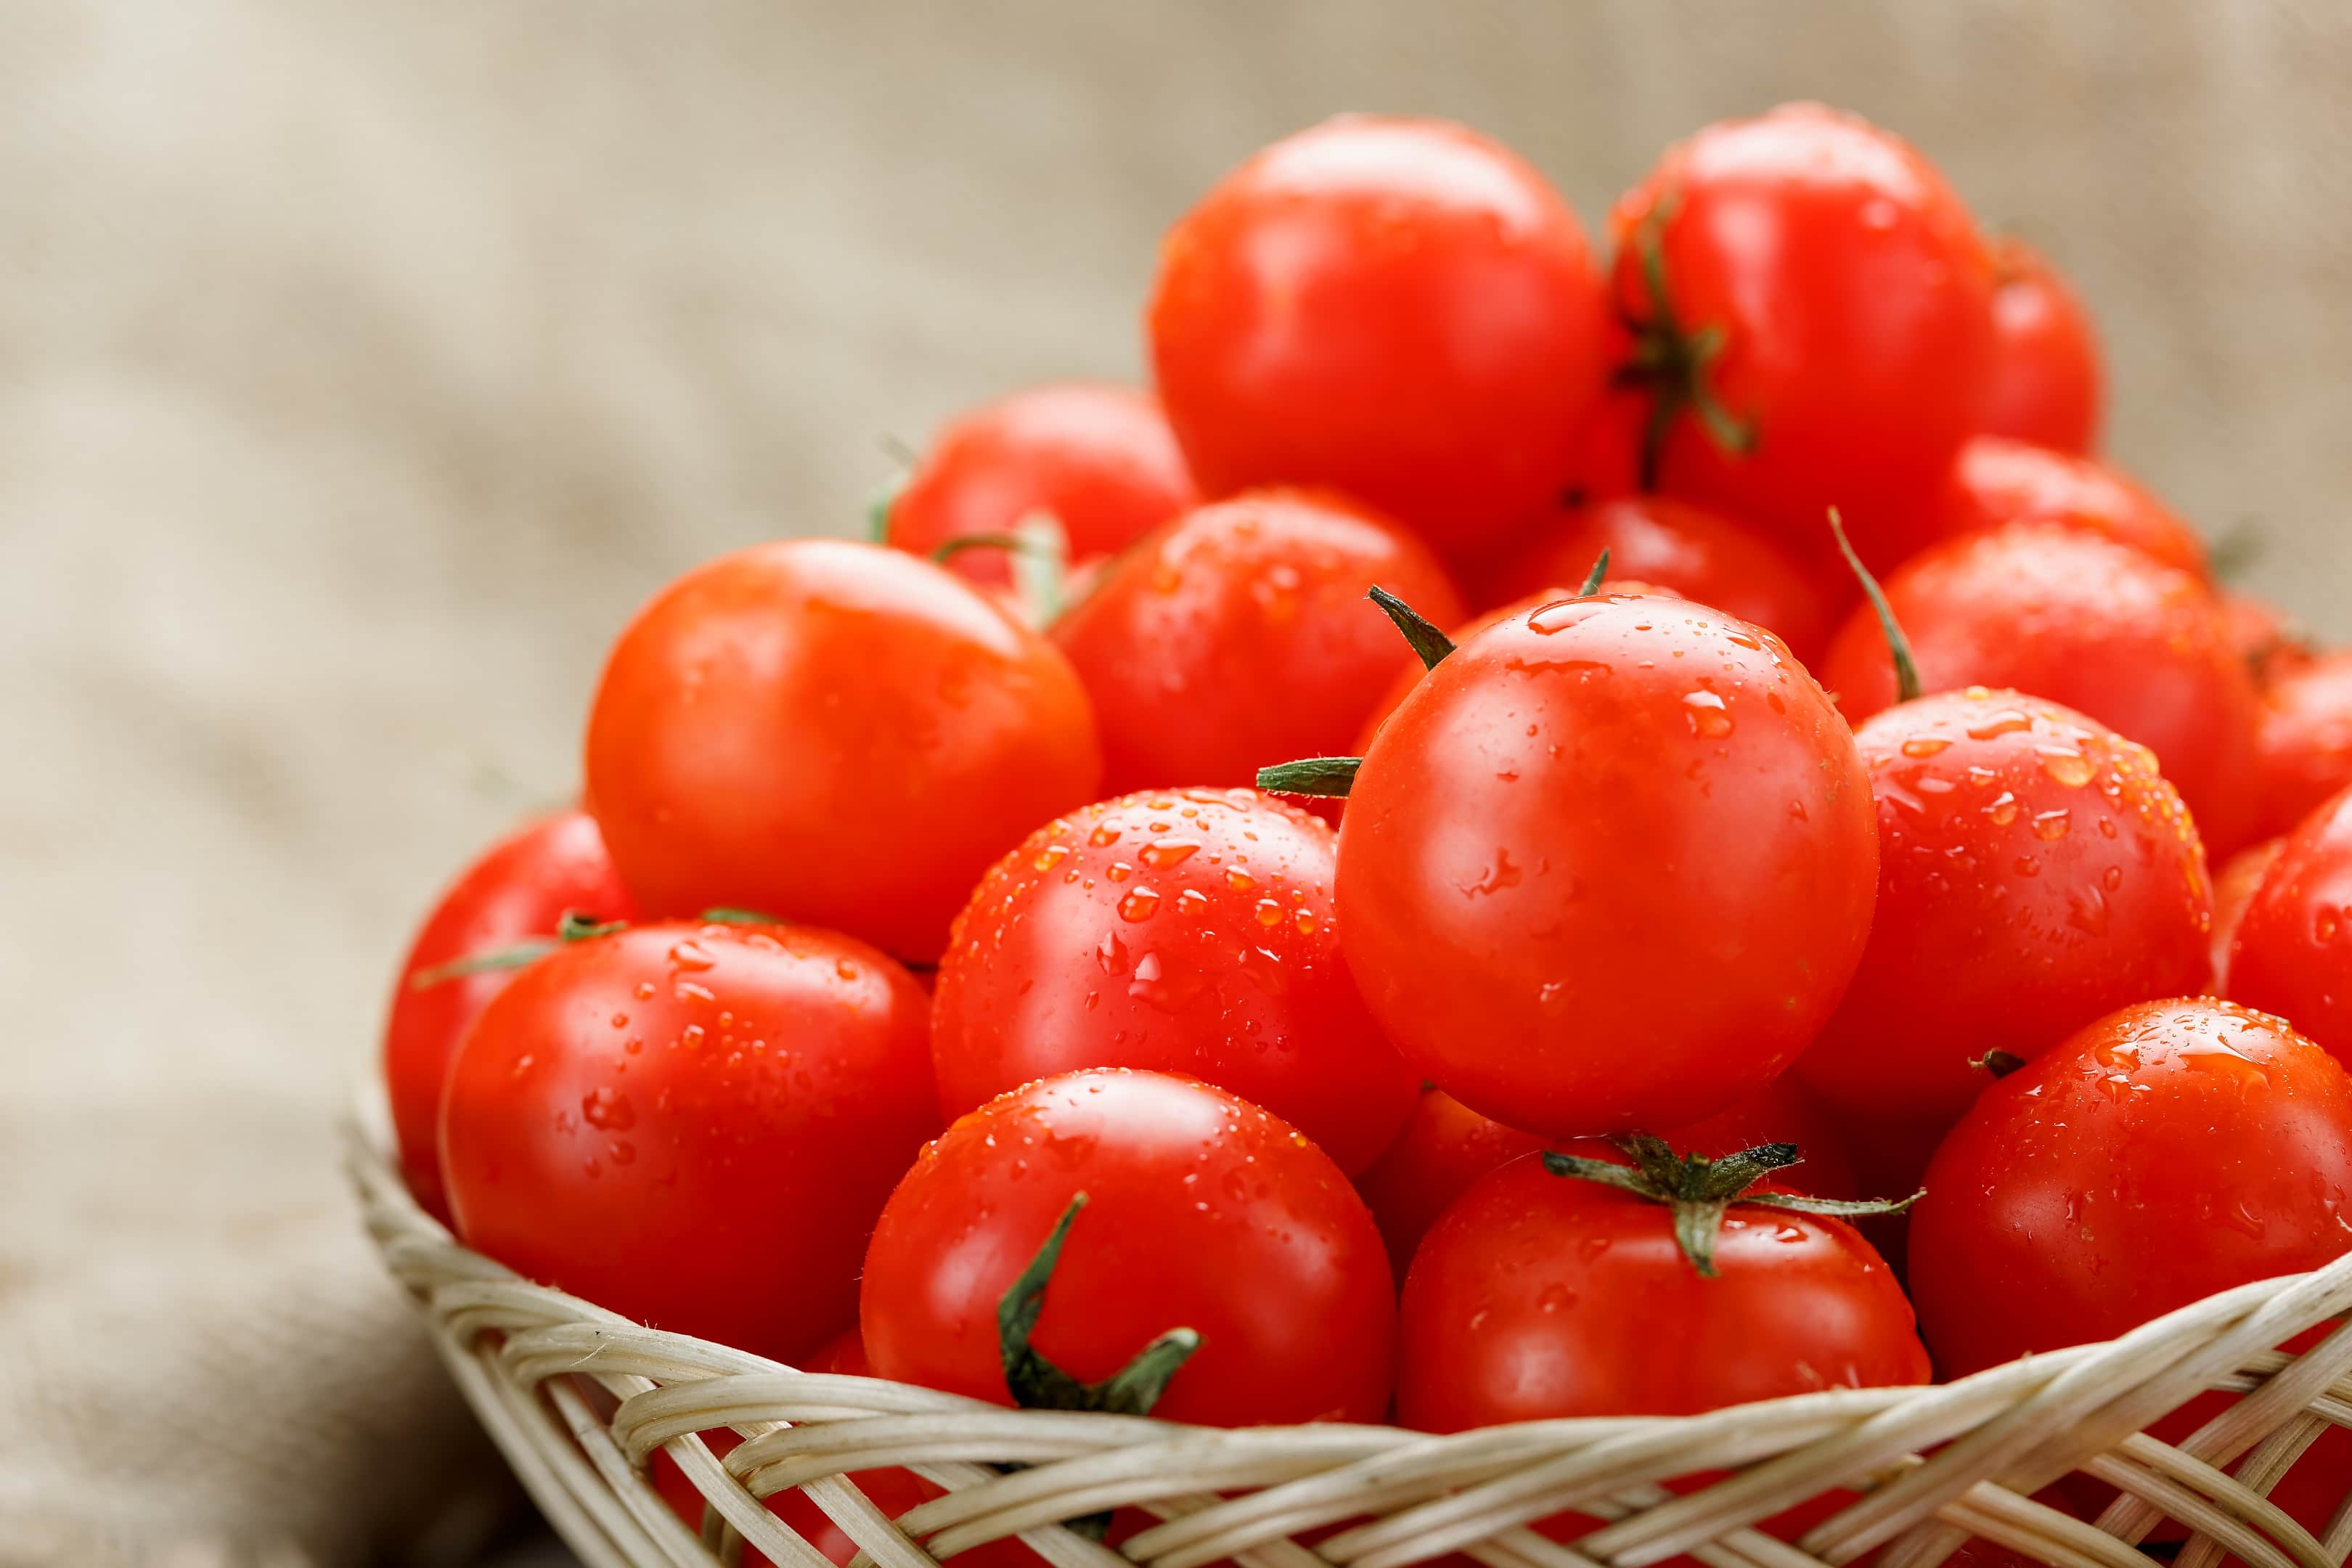 Ripe cherry tomatoes in basket on wooden table